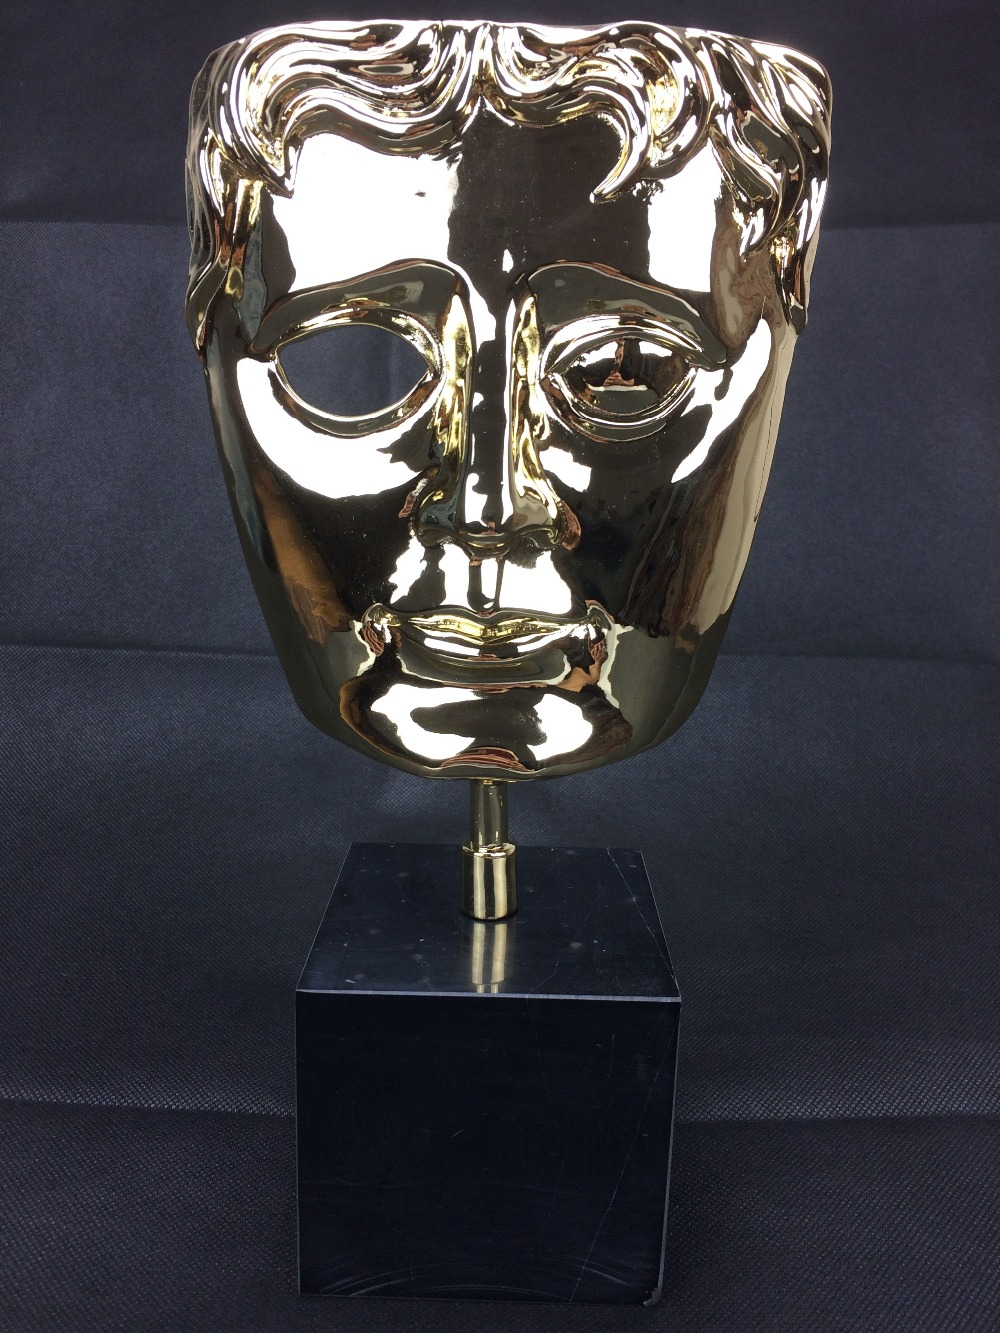 BAFTA Awards, Replika BAFTA Awards logam, Britsish Academy Film Awards